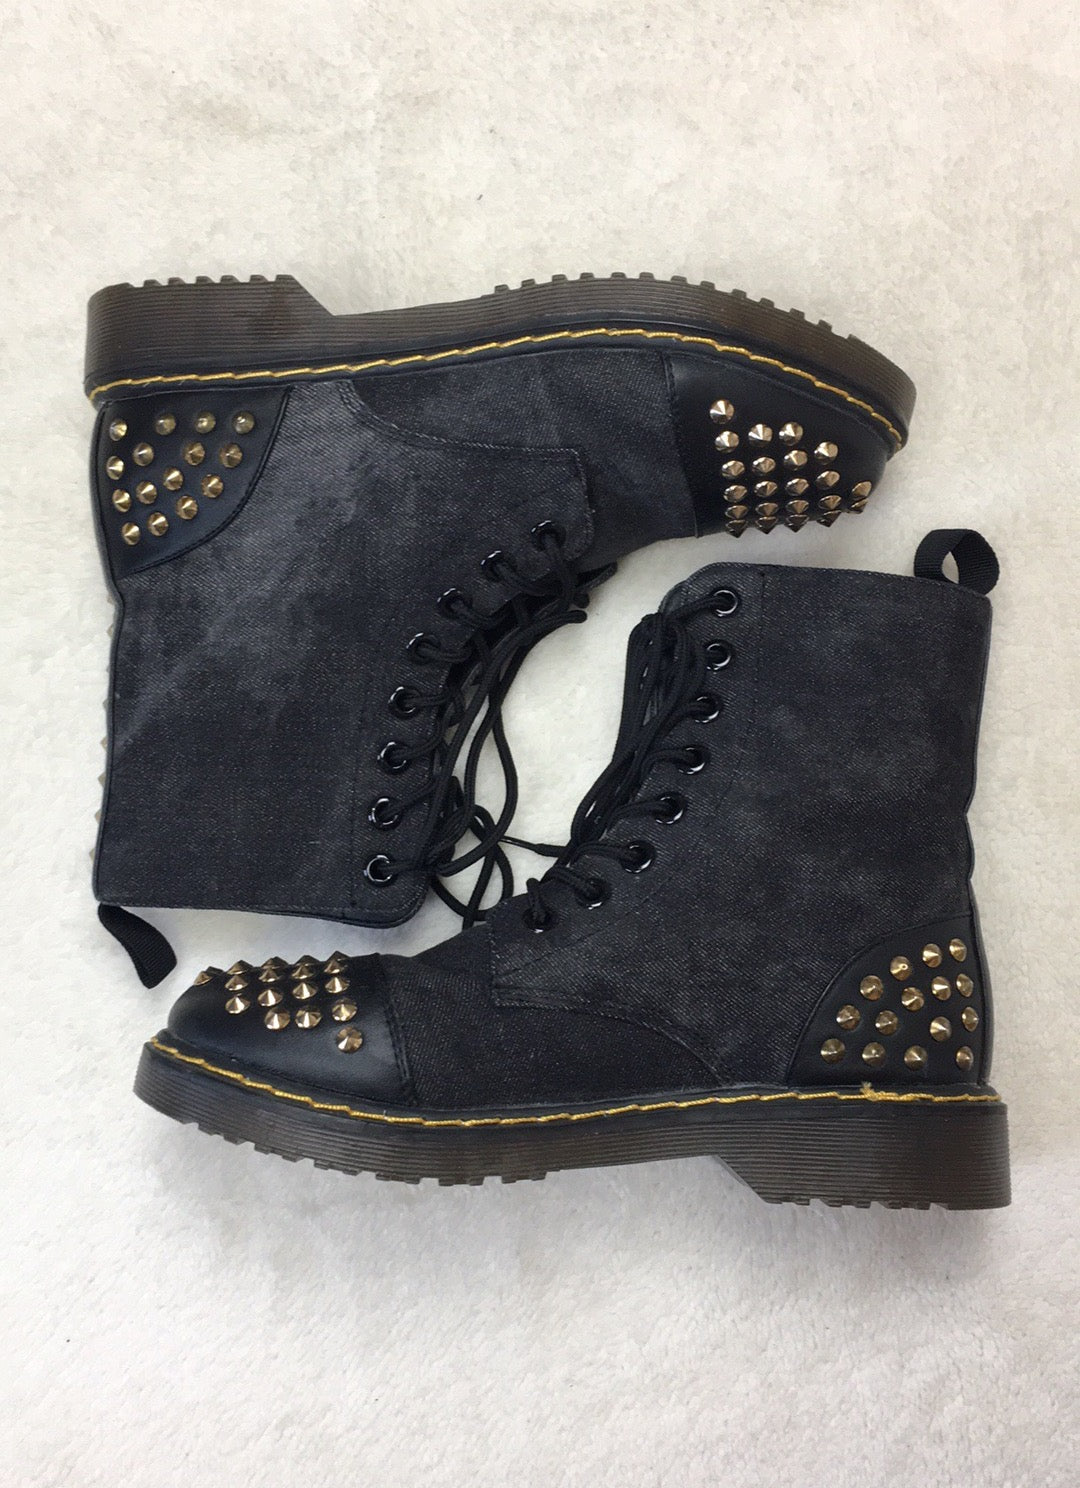 acbcac8608a Studded Combat Boots